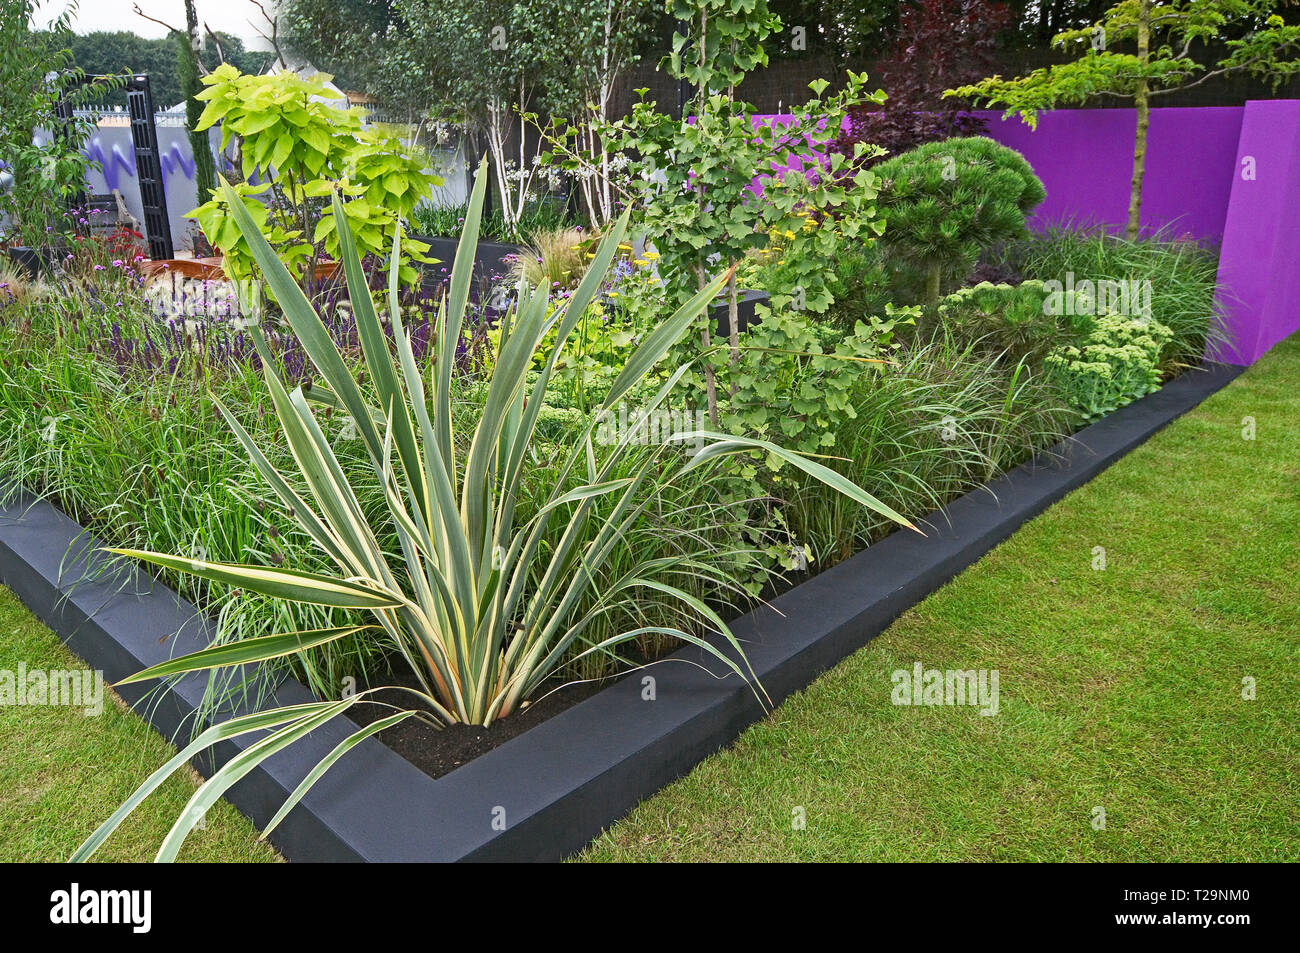 A modern garden with colourful mixed planting of flowers, grasses, cactus, plants and shrubs Stock Photo